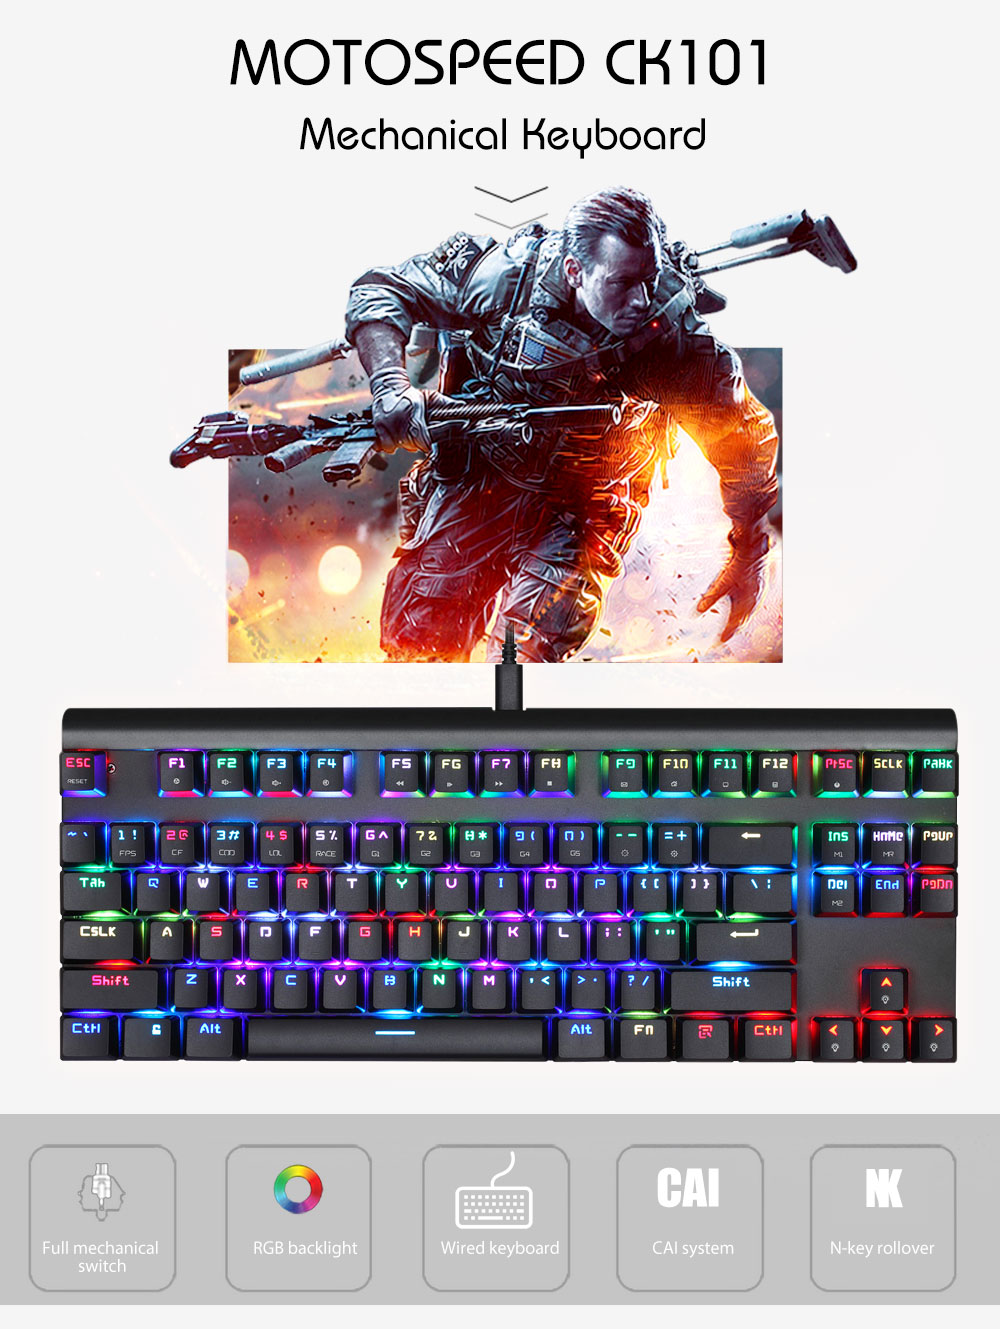 Original Motospeed Ck101 Nkro Wired Mechanical Gaming Keyboard Rgb Keyscan Wiring Diagram Press Fn Ins Keys Can Change Backlight Modes Support Full Without Conflict Extremely Fast Response Speed With Custom Switches